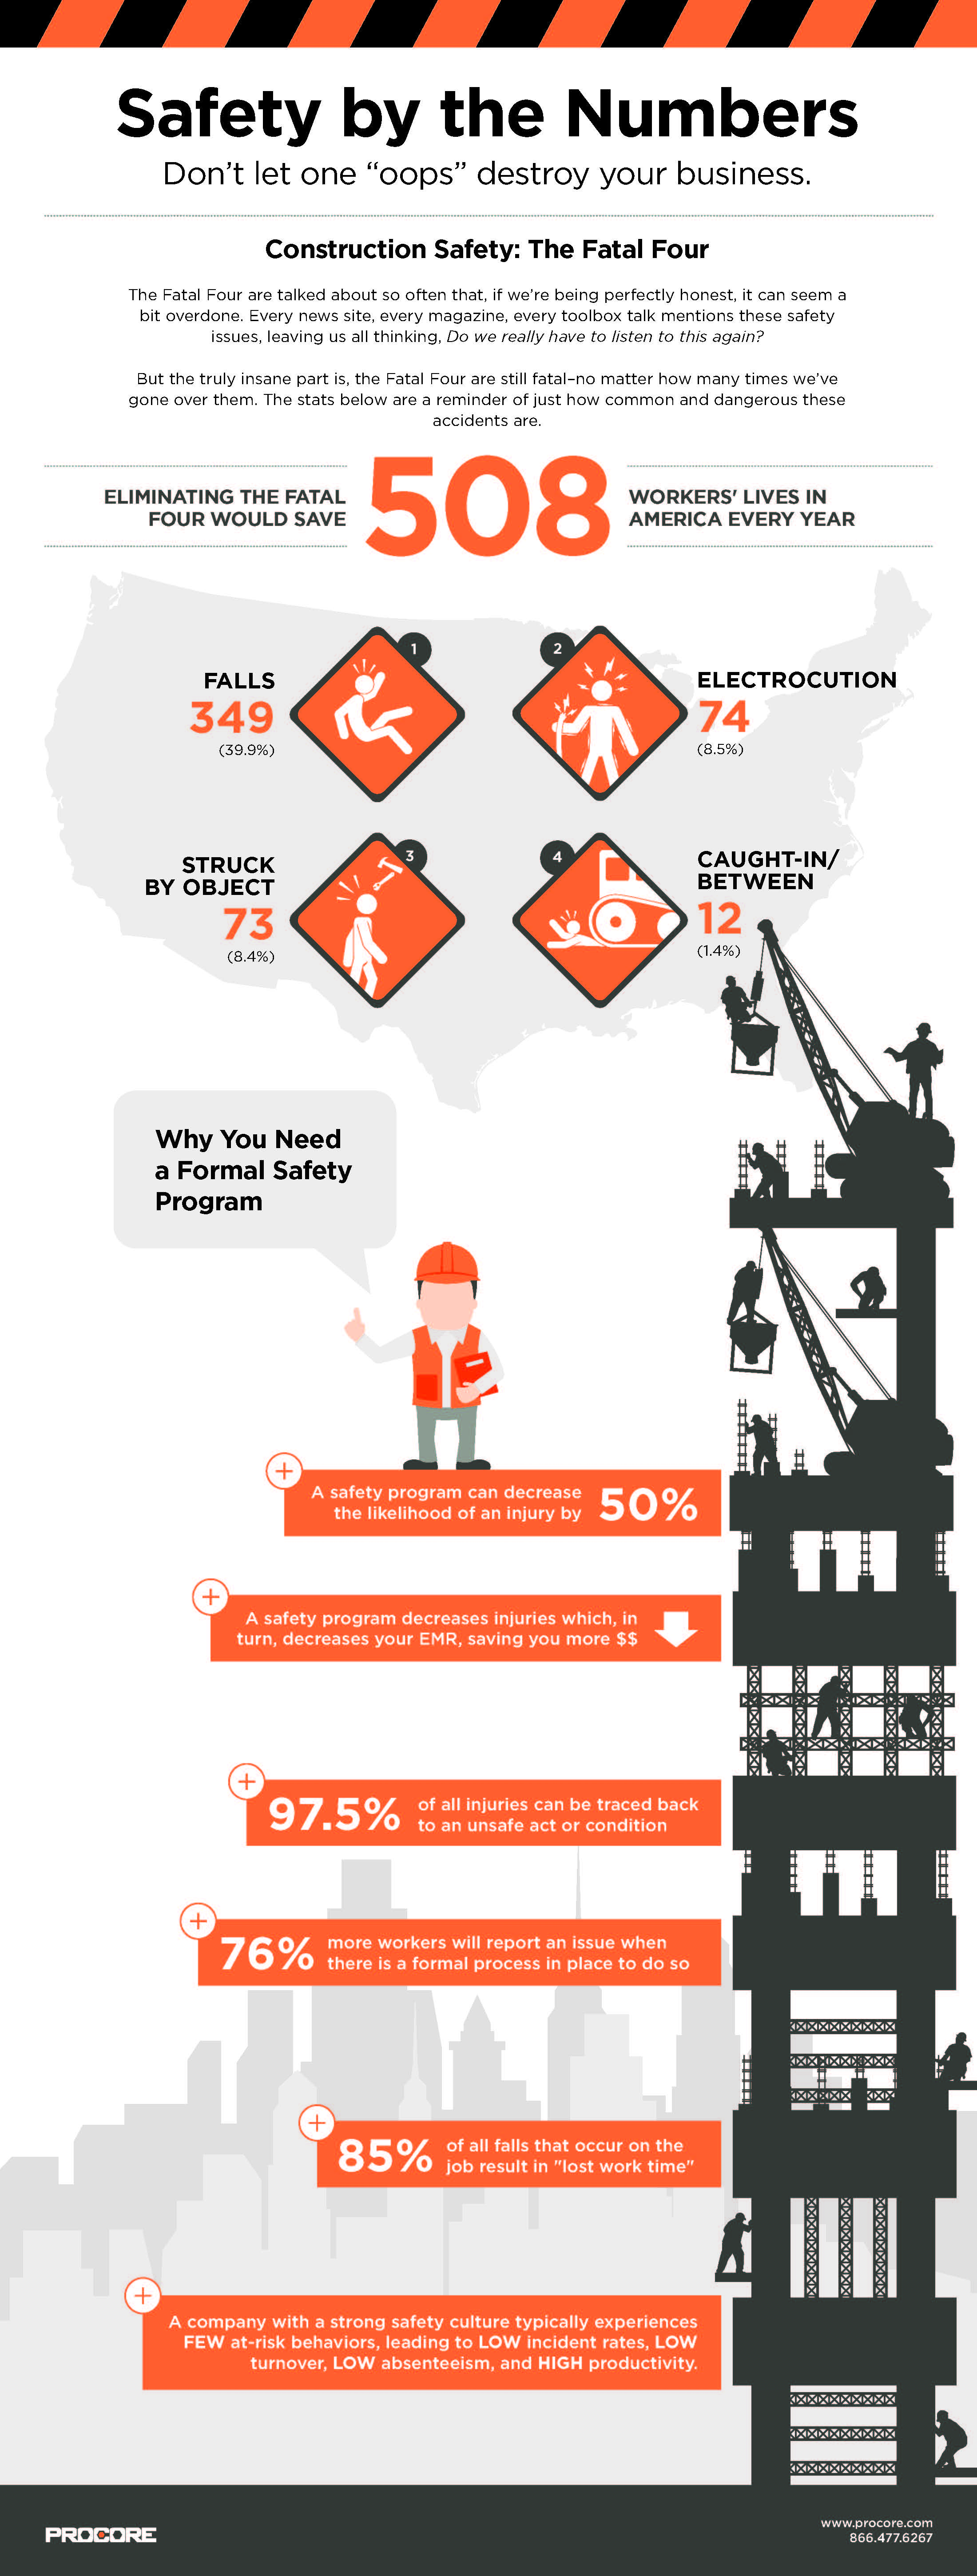 4 Safety Stand Down Tips by OSHA   Jobsite by Procore